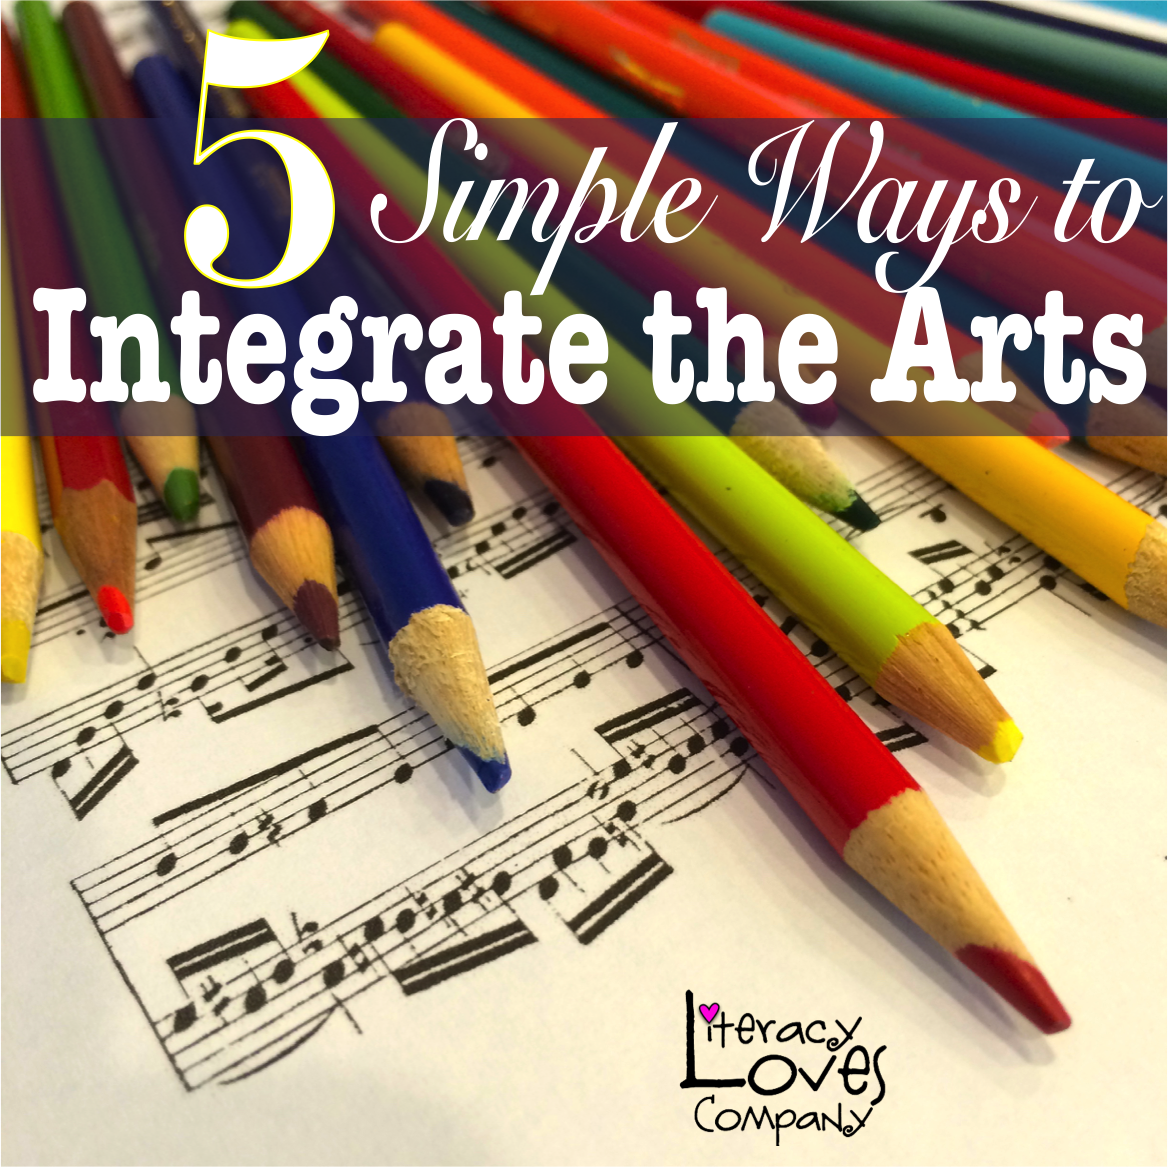 As the arts lose more and more of a hold in education, it becomes increasingly important for teachers to find way to integrate the arts into their curricula. Our guest blogger shares five simple ways to integrate the arts into any content area, so click through to read all of her suggestions.